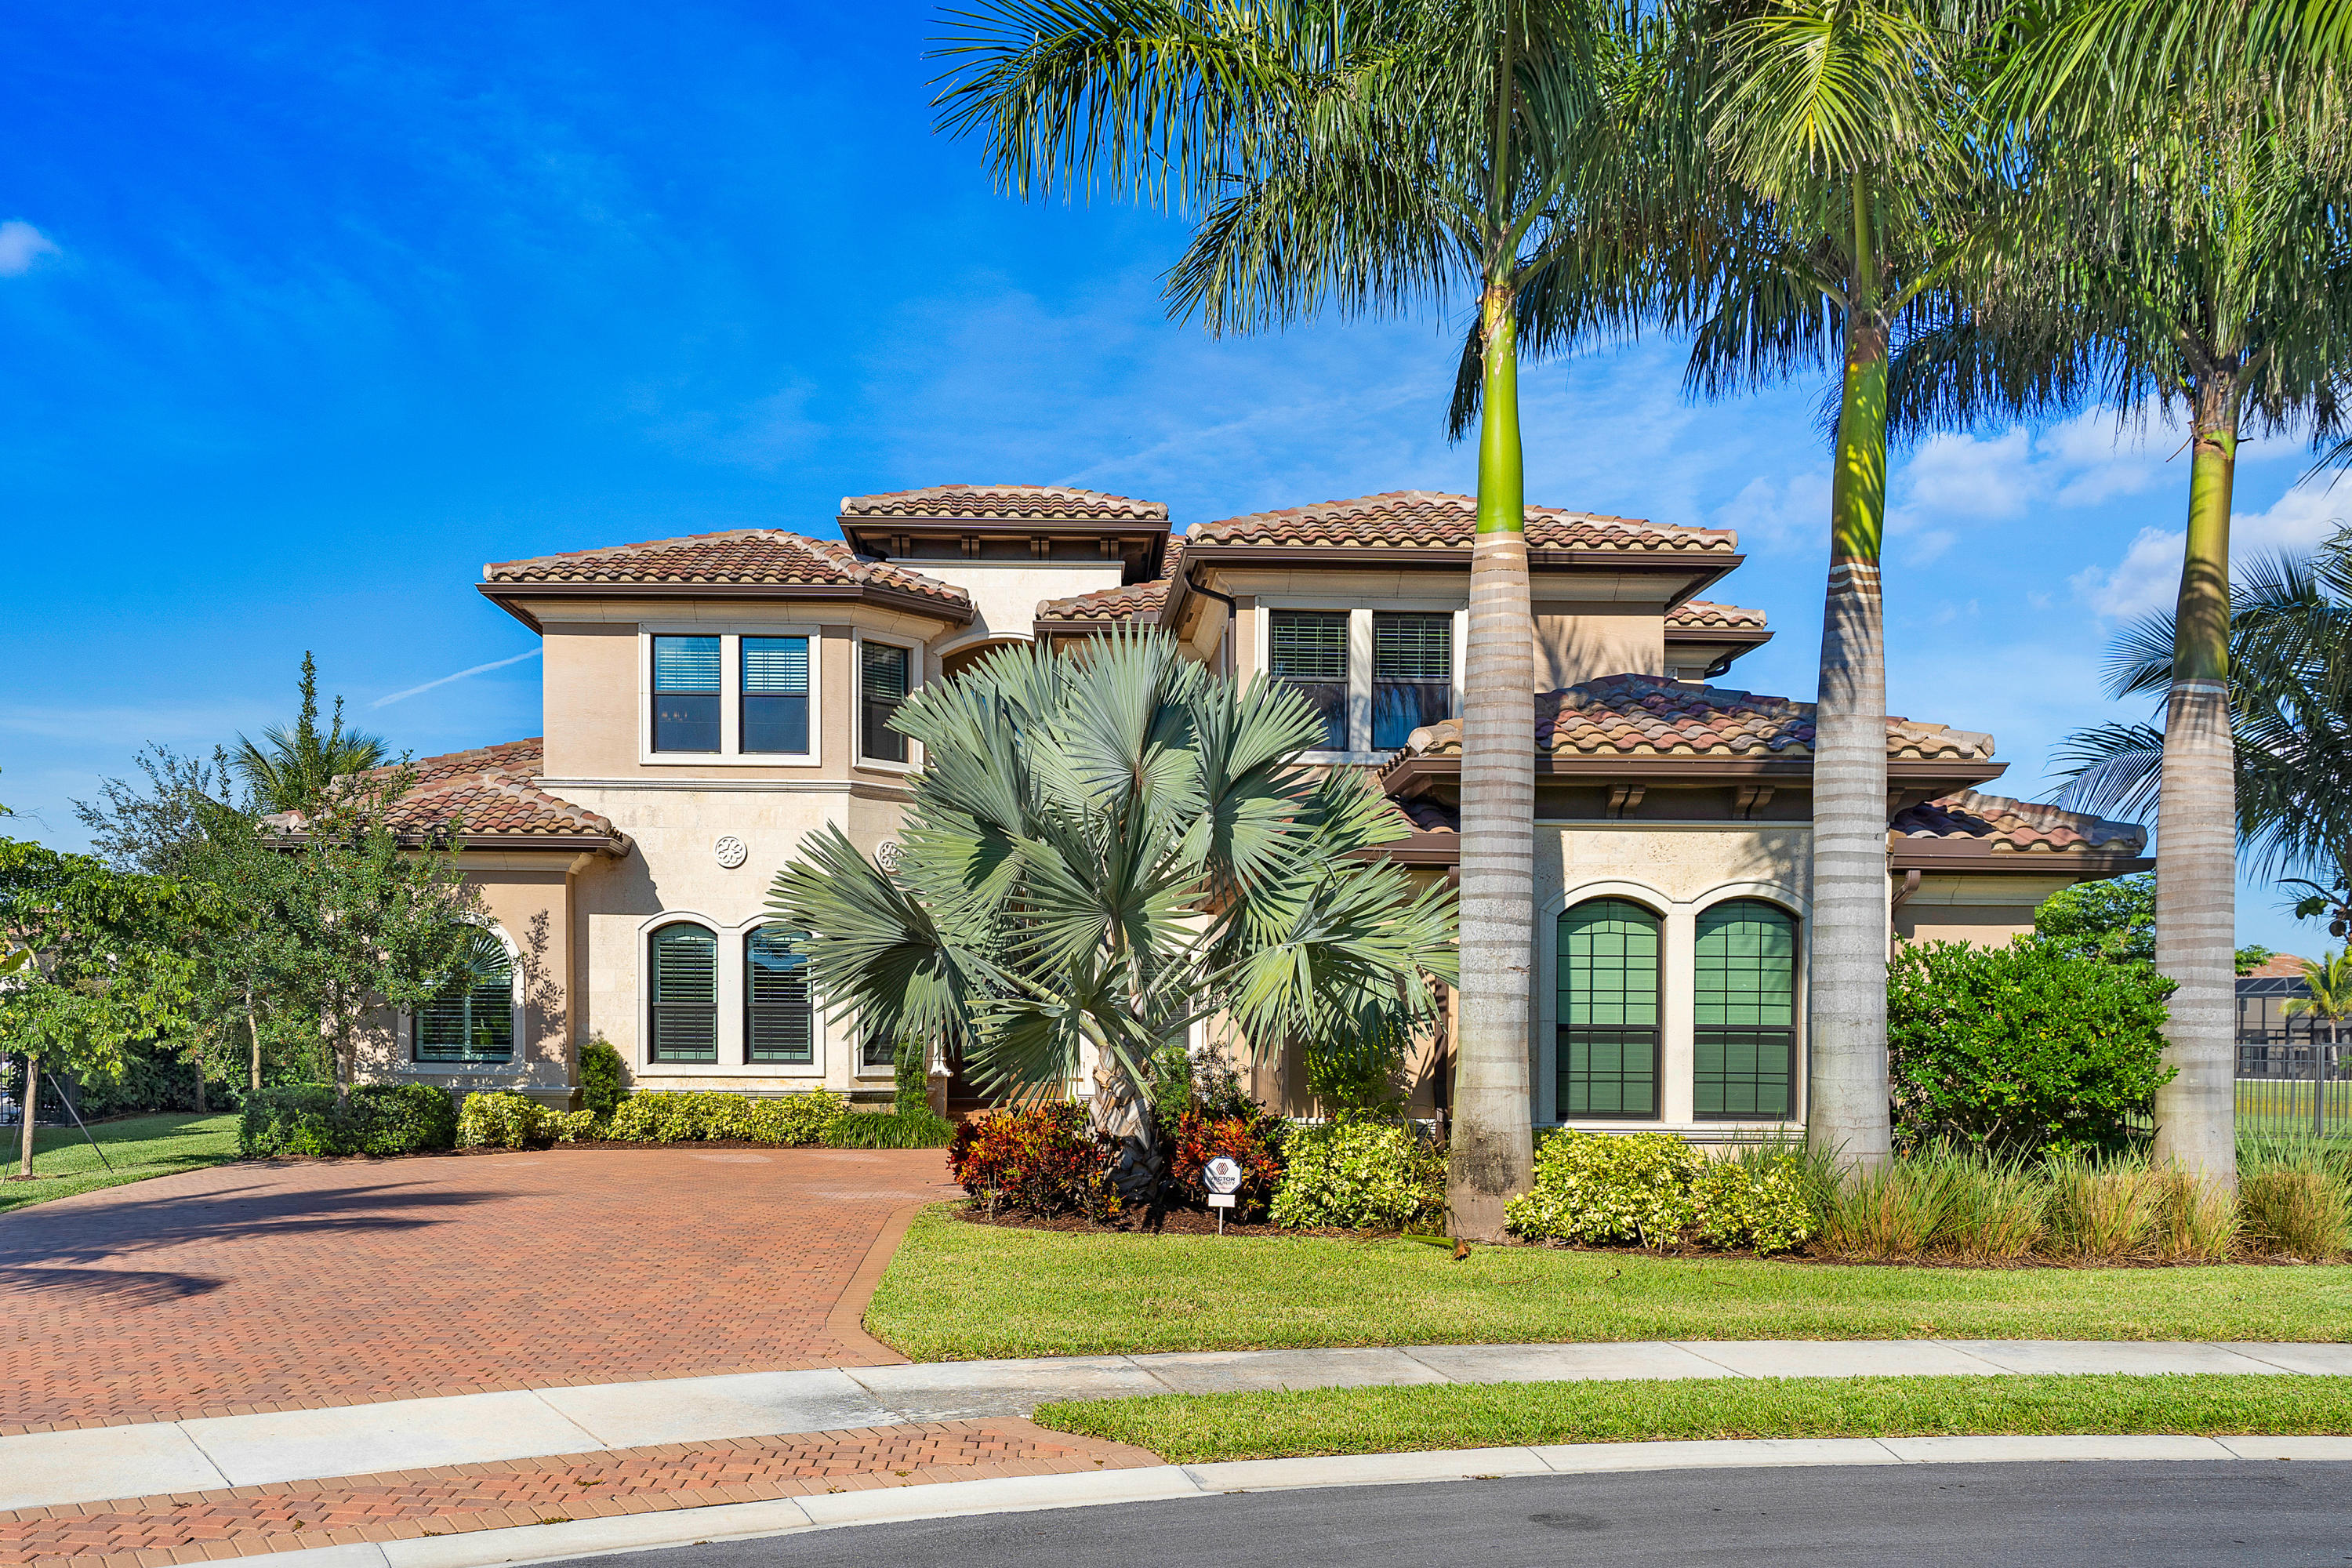 EXCEPTIONAL 2015 BUILT COLONNADE MODEL SITED ON A GORGEOUS, HUGE, PIE-SHAPED, LAKEFRONT LOT IN DELRAYS HOT NEW COMMUNITY, SEVEN BRIDGES!  THIS HOME IS FILLED WITH NATURAL LIGHT AND OFFERS GREAT LAKE VIEWS!  DOUBLE DOOR ENTRY OPENS TO THE FORMAL LIVING ROOM W/ WALL OF GLASS LOOKING OUT OVER THE MARBLE PAVERED POOL DECK TO THE LAKE BEYOND.  THE BEAUTIFULLY FINISHED ISLAND KITCHEN W/ SUB ZERO REFRIGERATOR, WOLF GAS RANGE, BOSCH DISHWASHER AND BUILT IN WOLF COFFEE MAKER, OPENS TO THE LARGE FAMILY ROOM W/ VOLUME CEILINGS AND SHARES THESE MAGNIFICNET VIEWS.  THE SUMPTUOUS FIRST FLOOR MASTER SUITE W/ WOOD FLOORING FEATURES WATER VIEWS, HIS AND HER CLOSETS AND A LARGE BEAUTIFULLY FINISHED MASTER BATH WITH JACCUZI TUB.  AN OFFICE/LIBRARY, FORMAL DINING ROOM, GUEST SUITE, FULL CABANA BATH, LAUNDRY AND POWDER ROOM COMPLETE THE FIRST FLOOR.  A BEAUTIFUL WOOD STAIRCASE LEADS TO A LARGE OPEN LOFT WITH LAKE VIEWS AND 3 ADDITIONAL BEDROOMS EACH WITH FULL BATHS.  EXCEPTIONAL HOME ON AN AMAZING LOT.